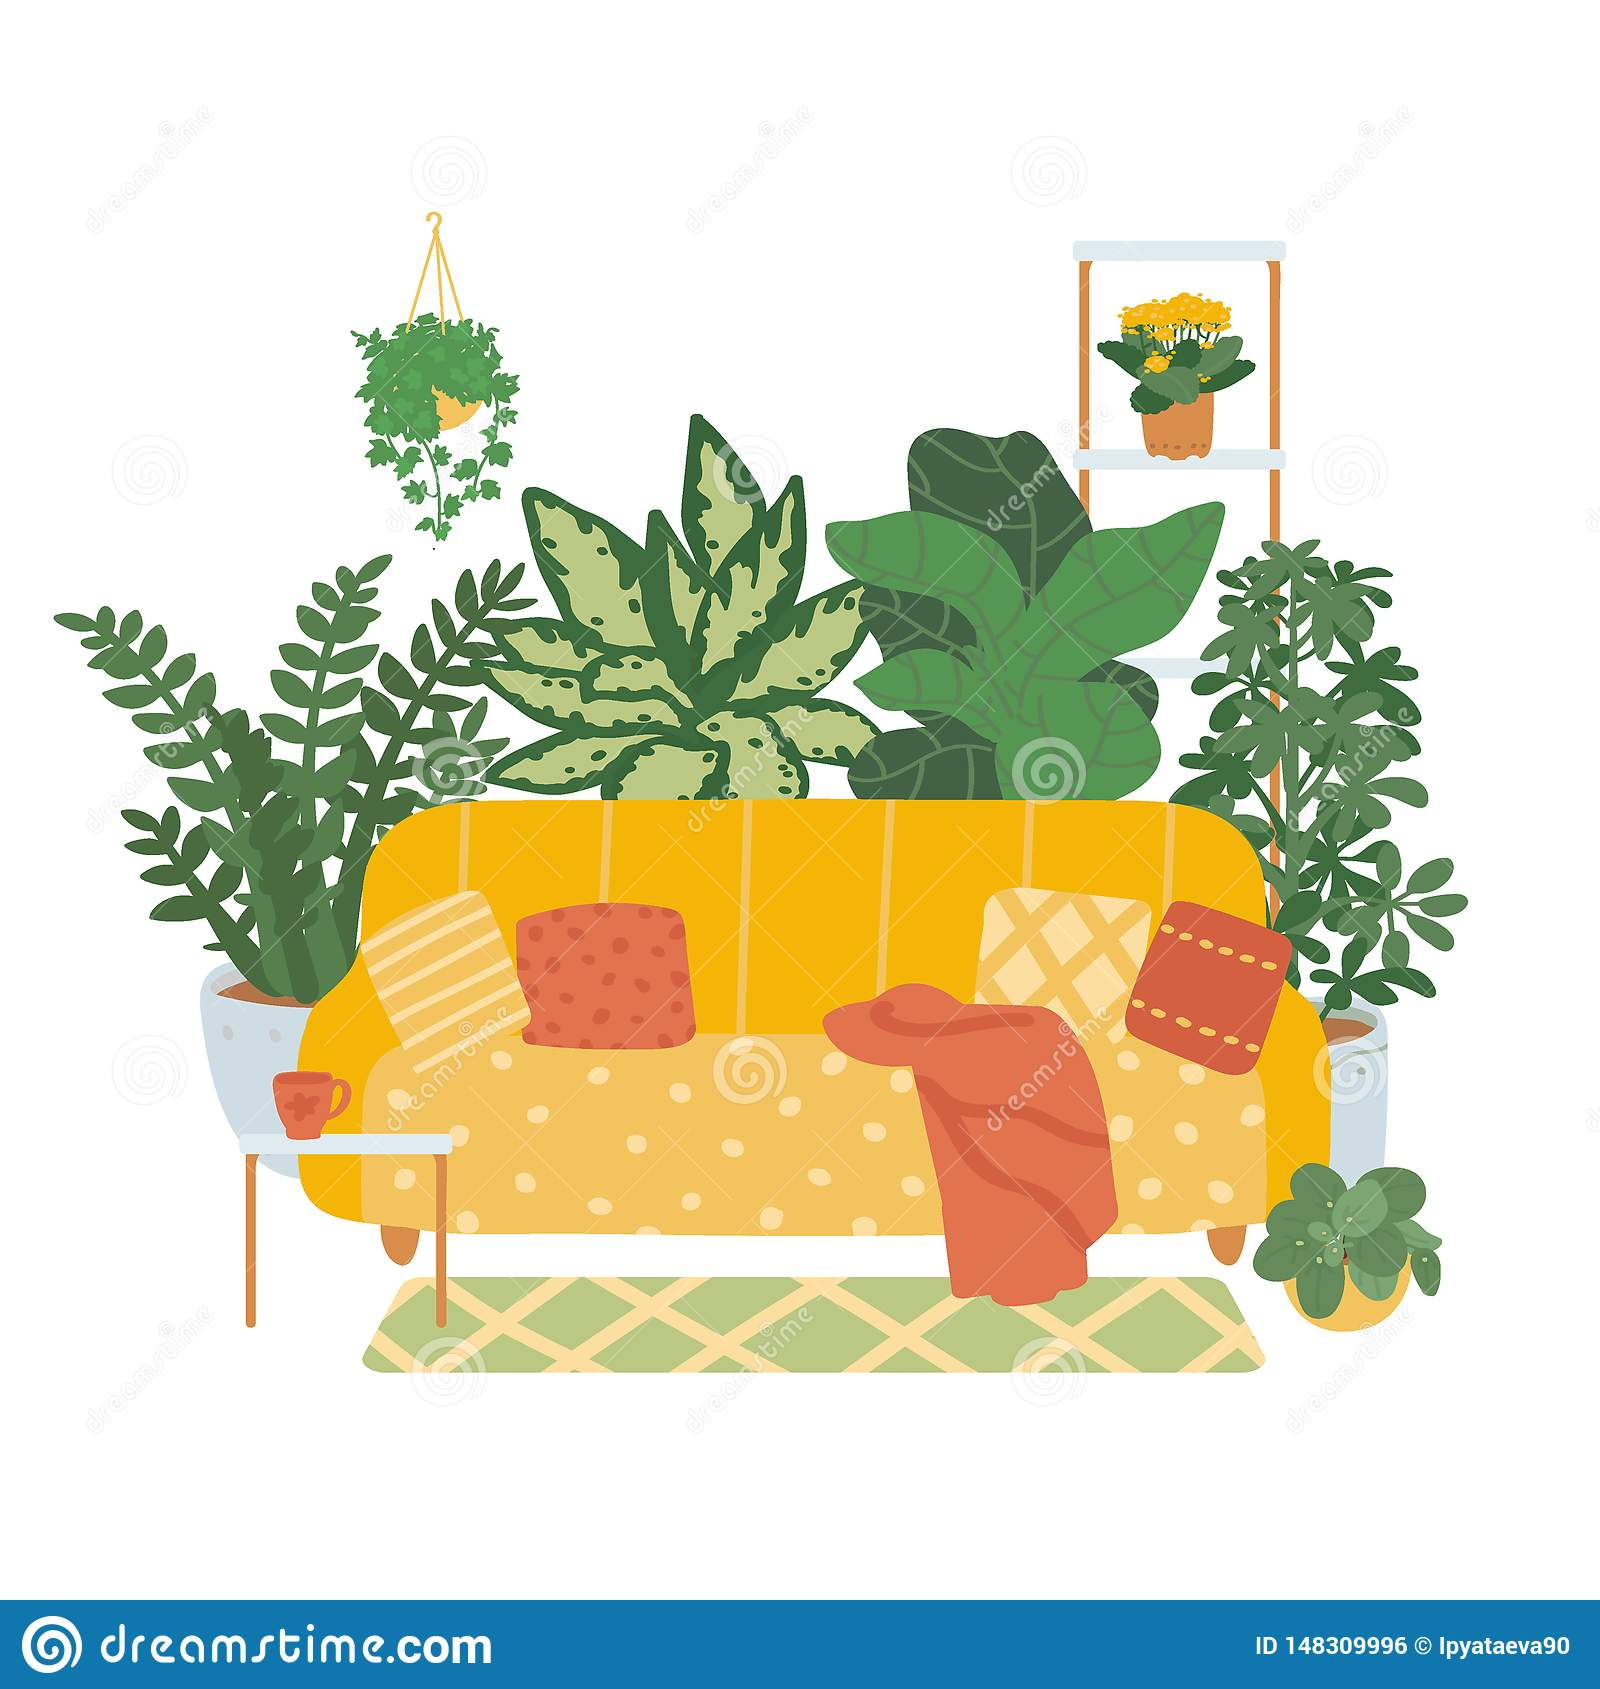 Interior of a cozy living room isolated on white background. Trend décor of indoor plants. Vector illustration in the